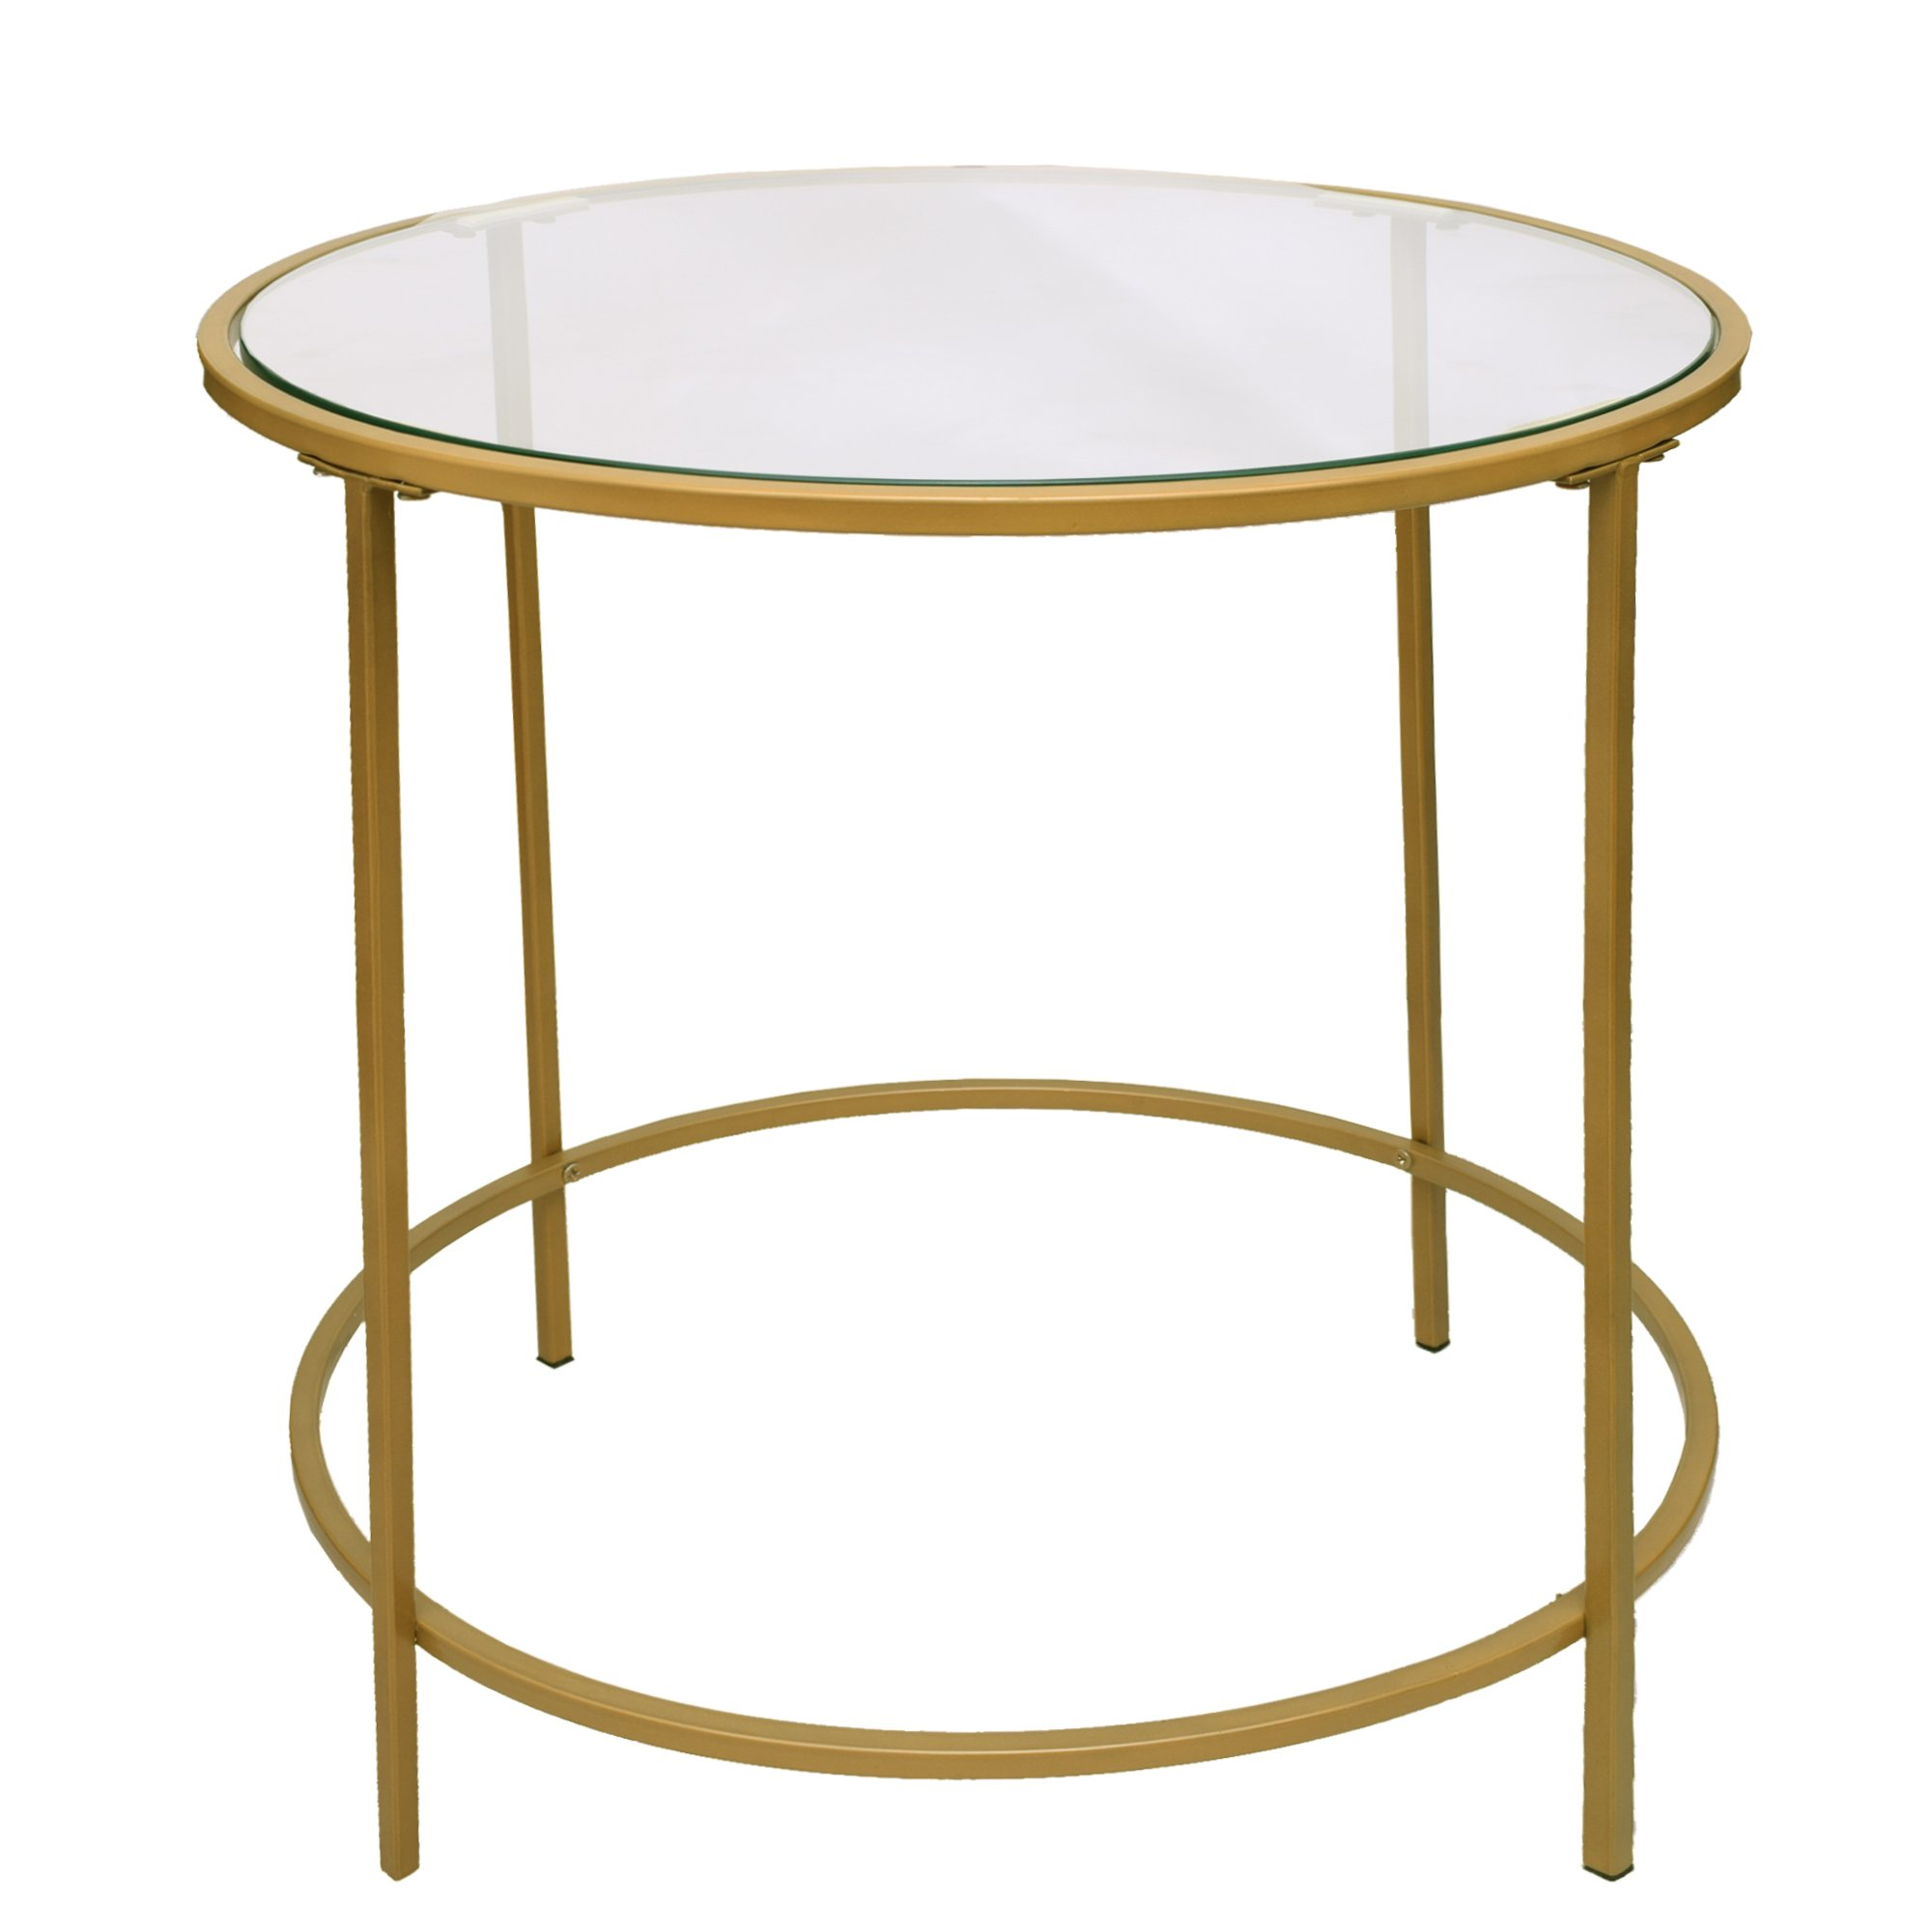 Contemporary Style Round Metal Framed End Table With Glass Top